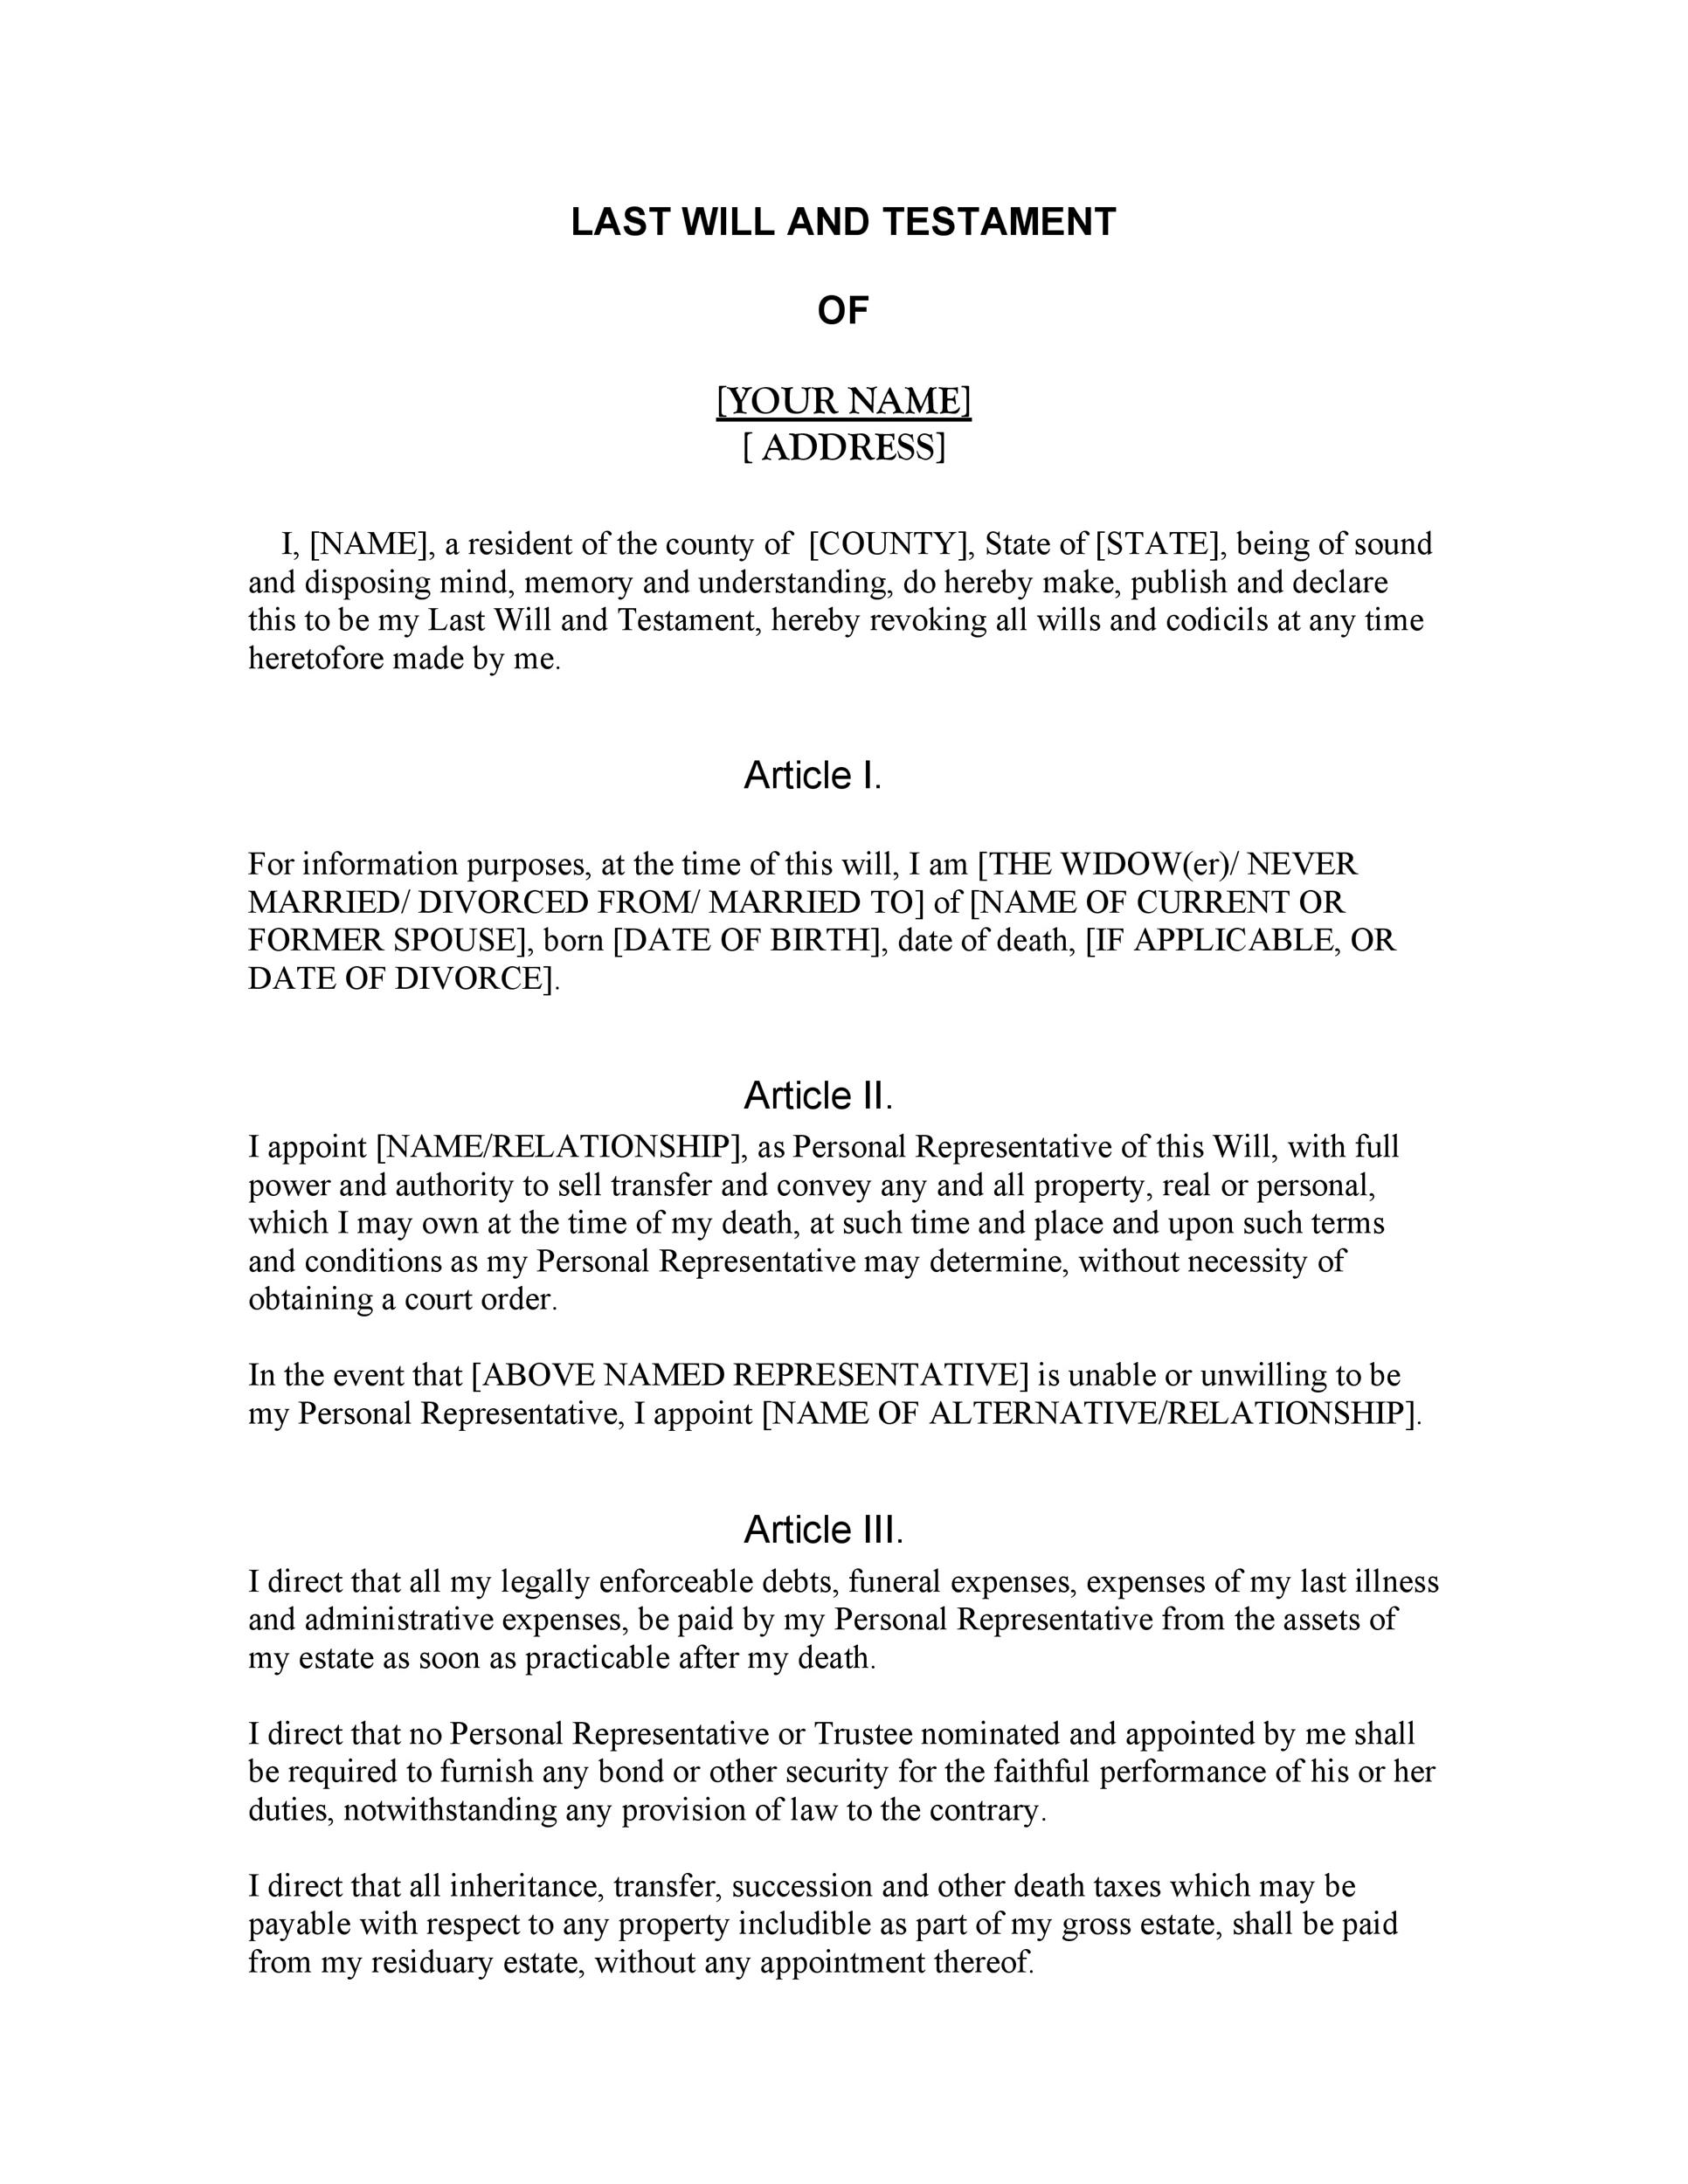 Free Last will and testament template 14